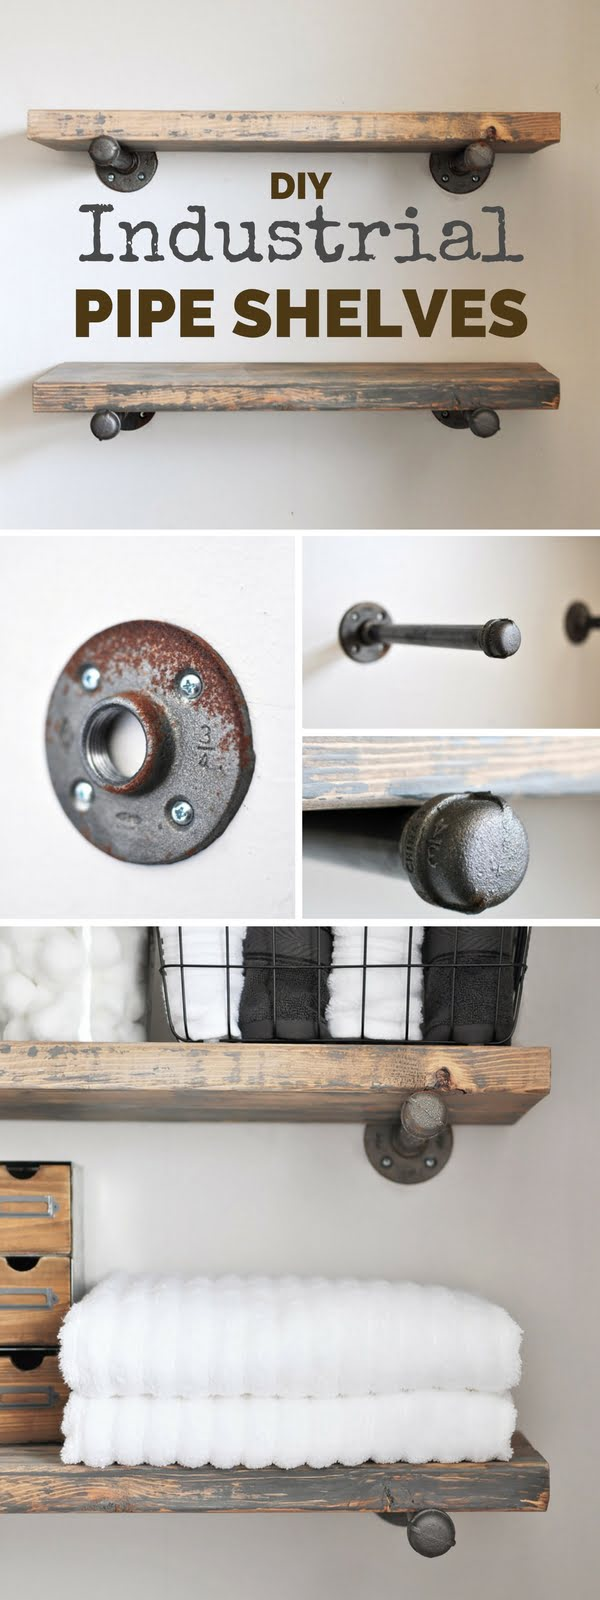 Check out the tutorial:  Industrial Pipe Shelves